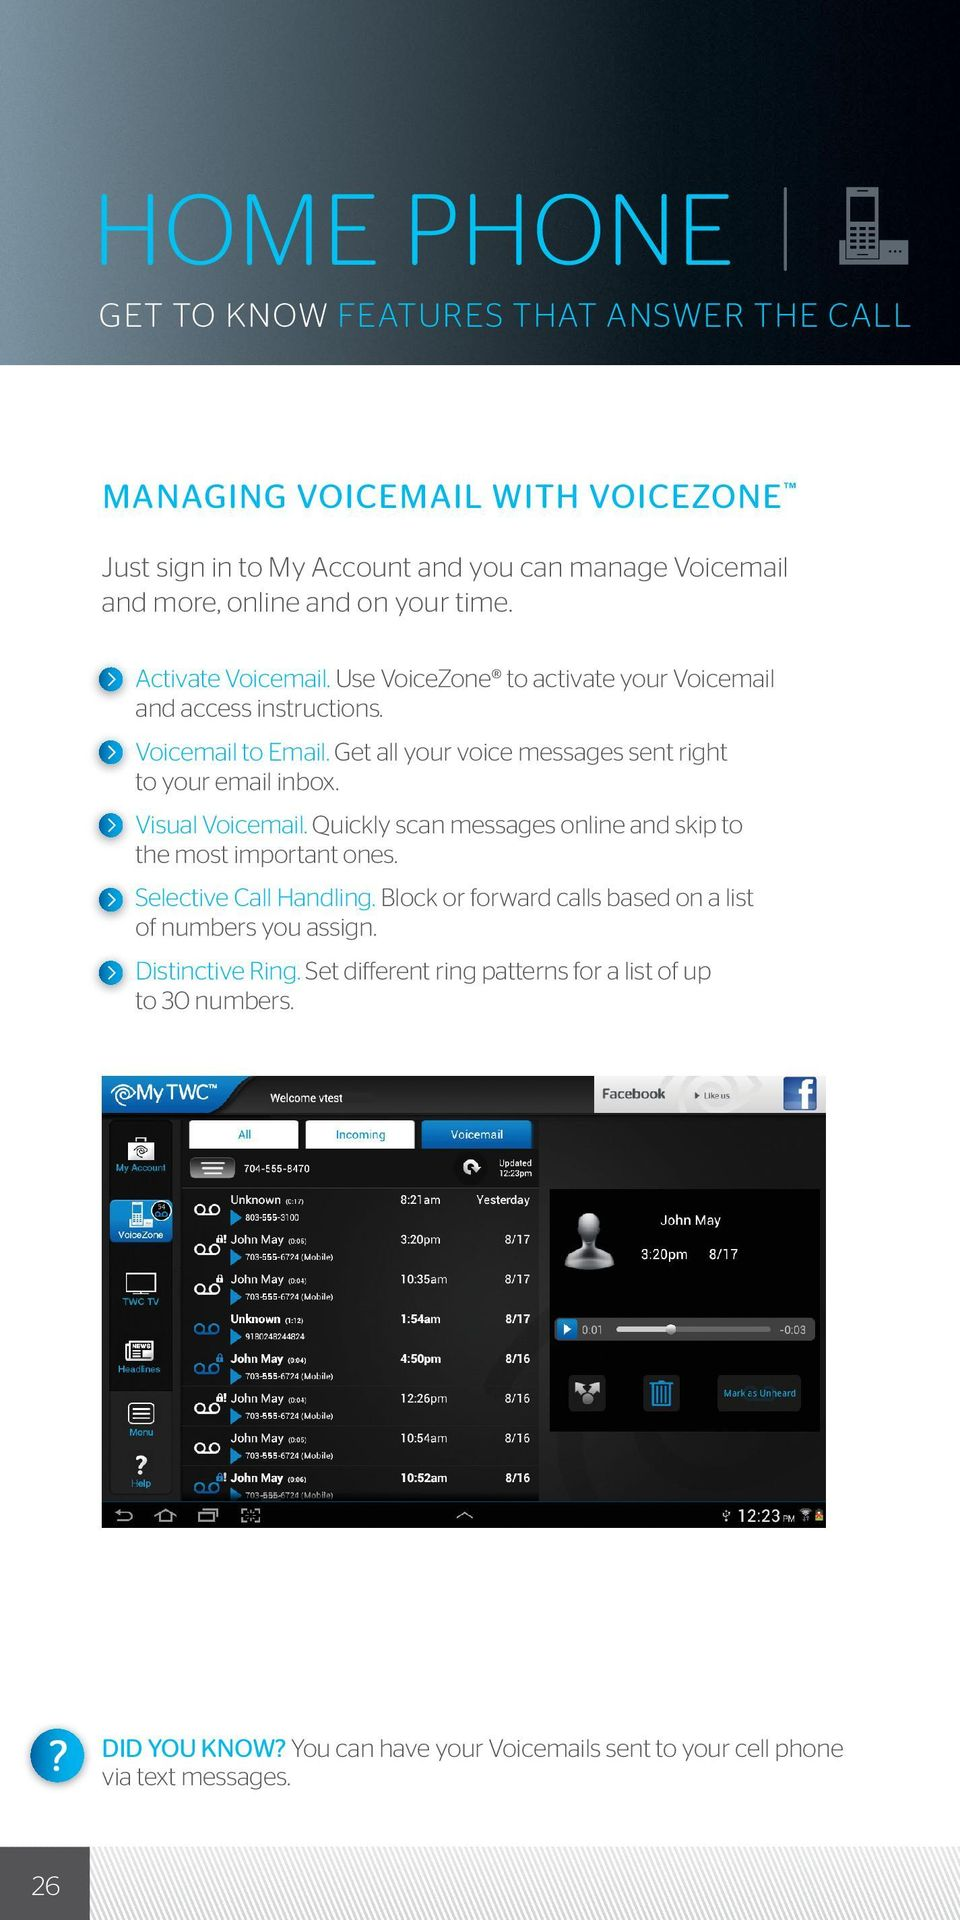 Get all your voice messages sent right to your email inbox. Visual Voicemail. Quickly scan messages online and skip to the most important ones. Selective Call Handling.